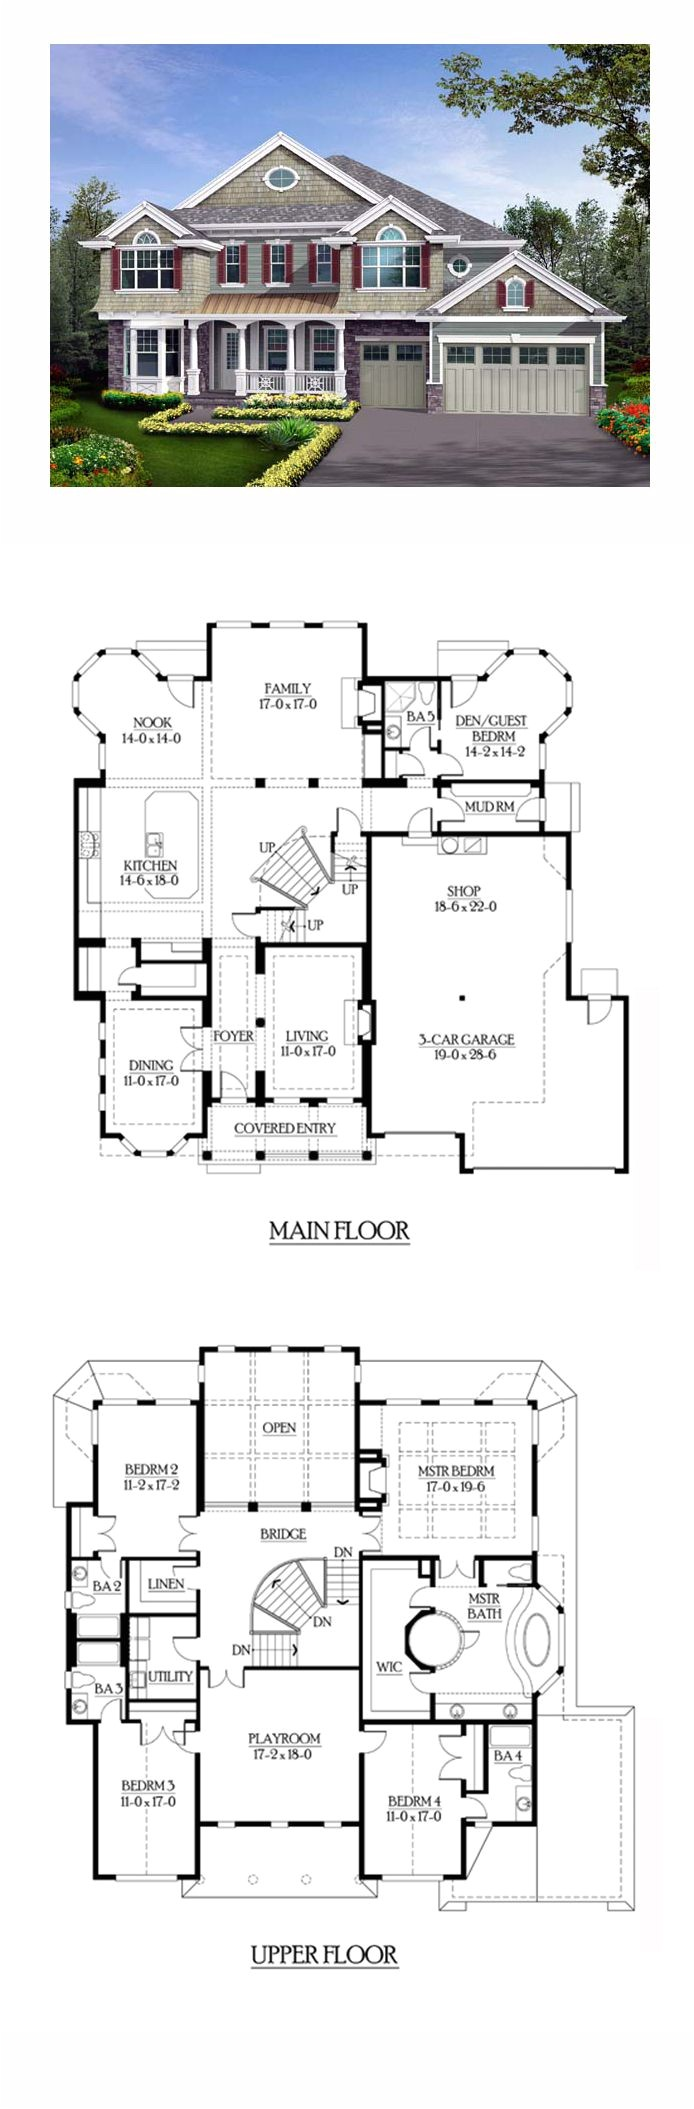 best house plans for a family of 5